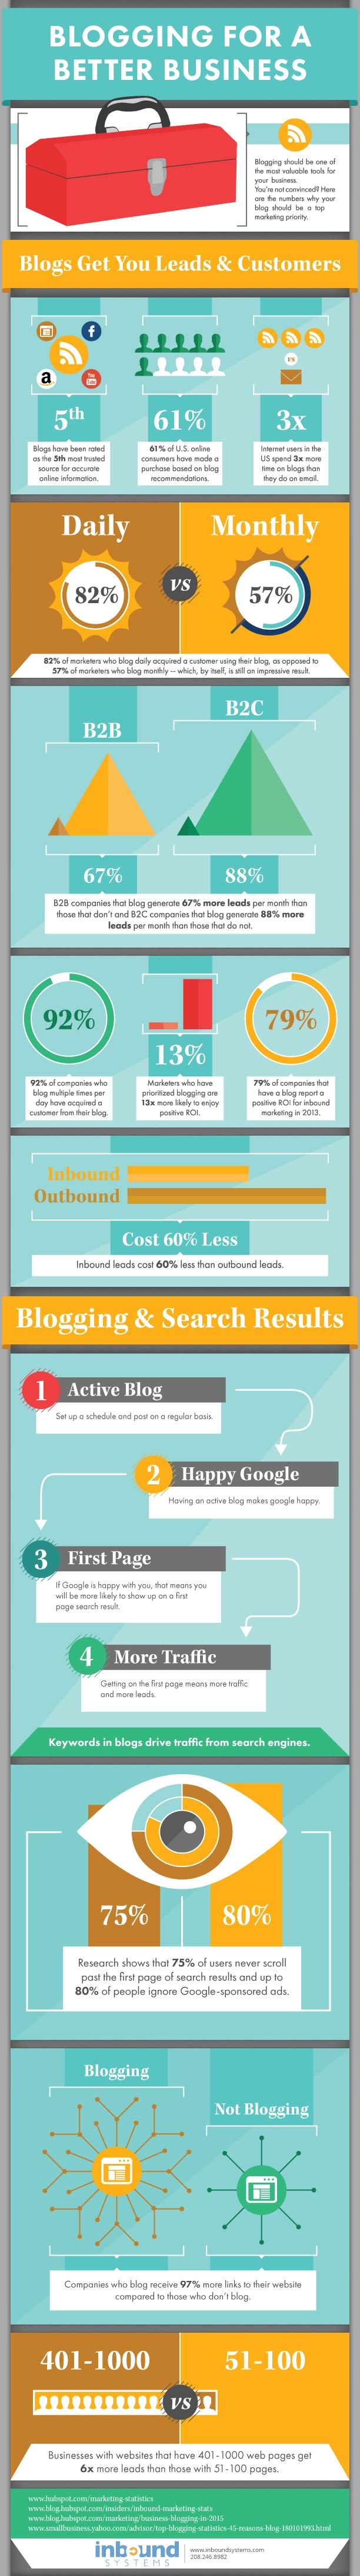 Why Blog? The Benefits of Blogging for Business and Marketing - infographic